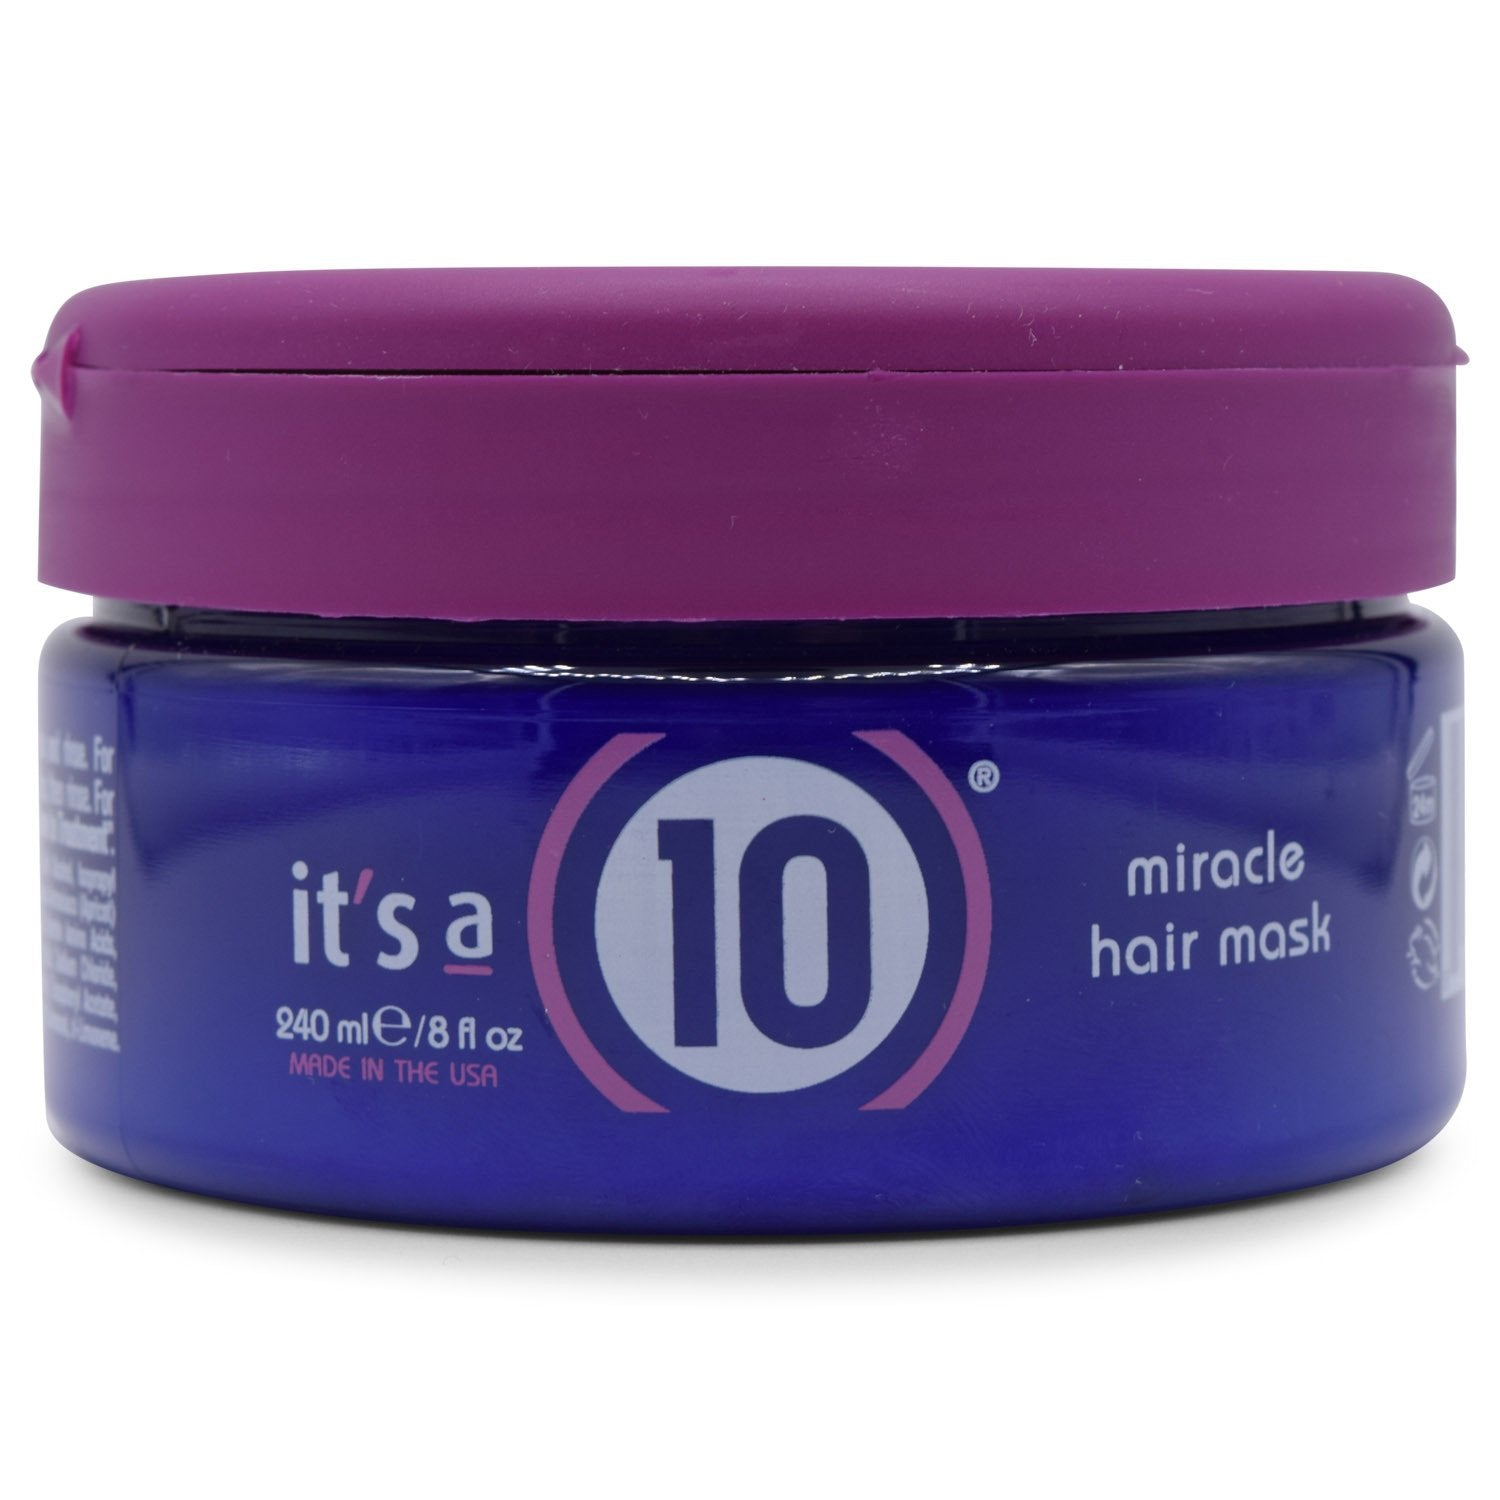 IT'S A 10 ~ Miracle Hair Mask ~ 8 fl oz